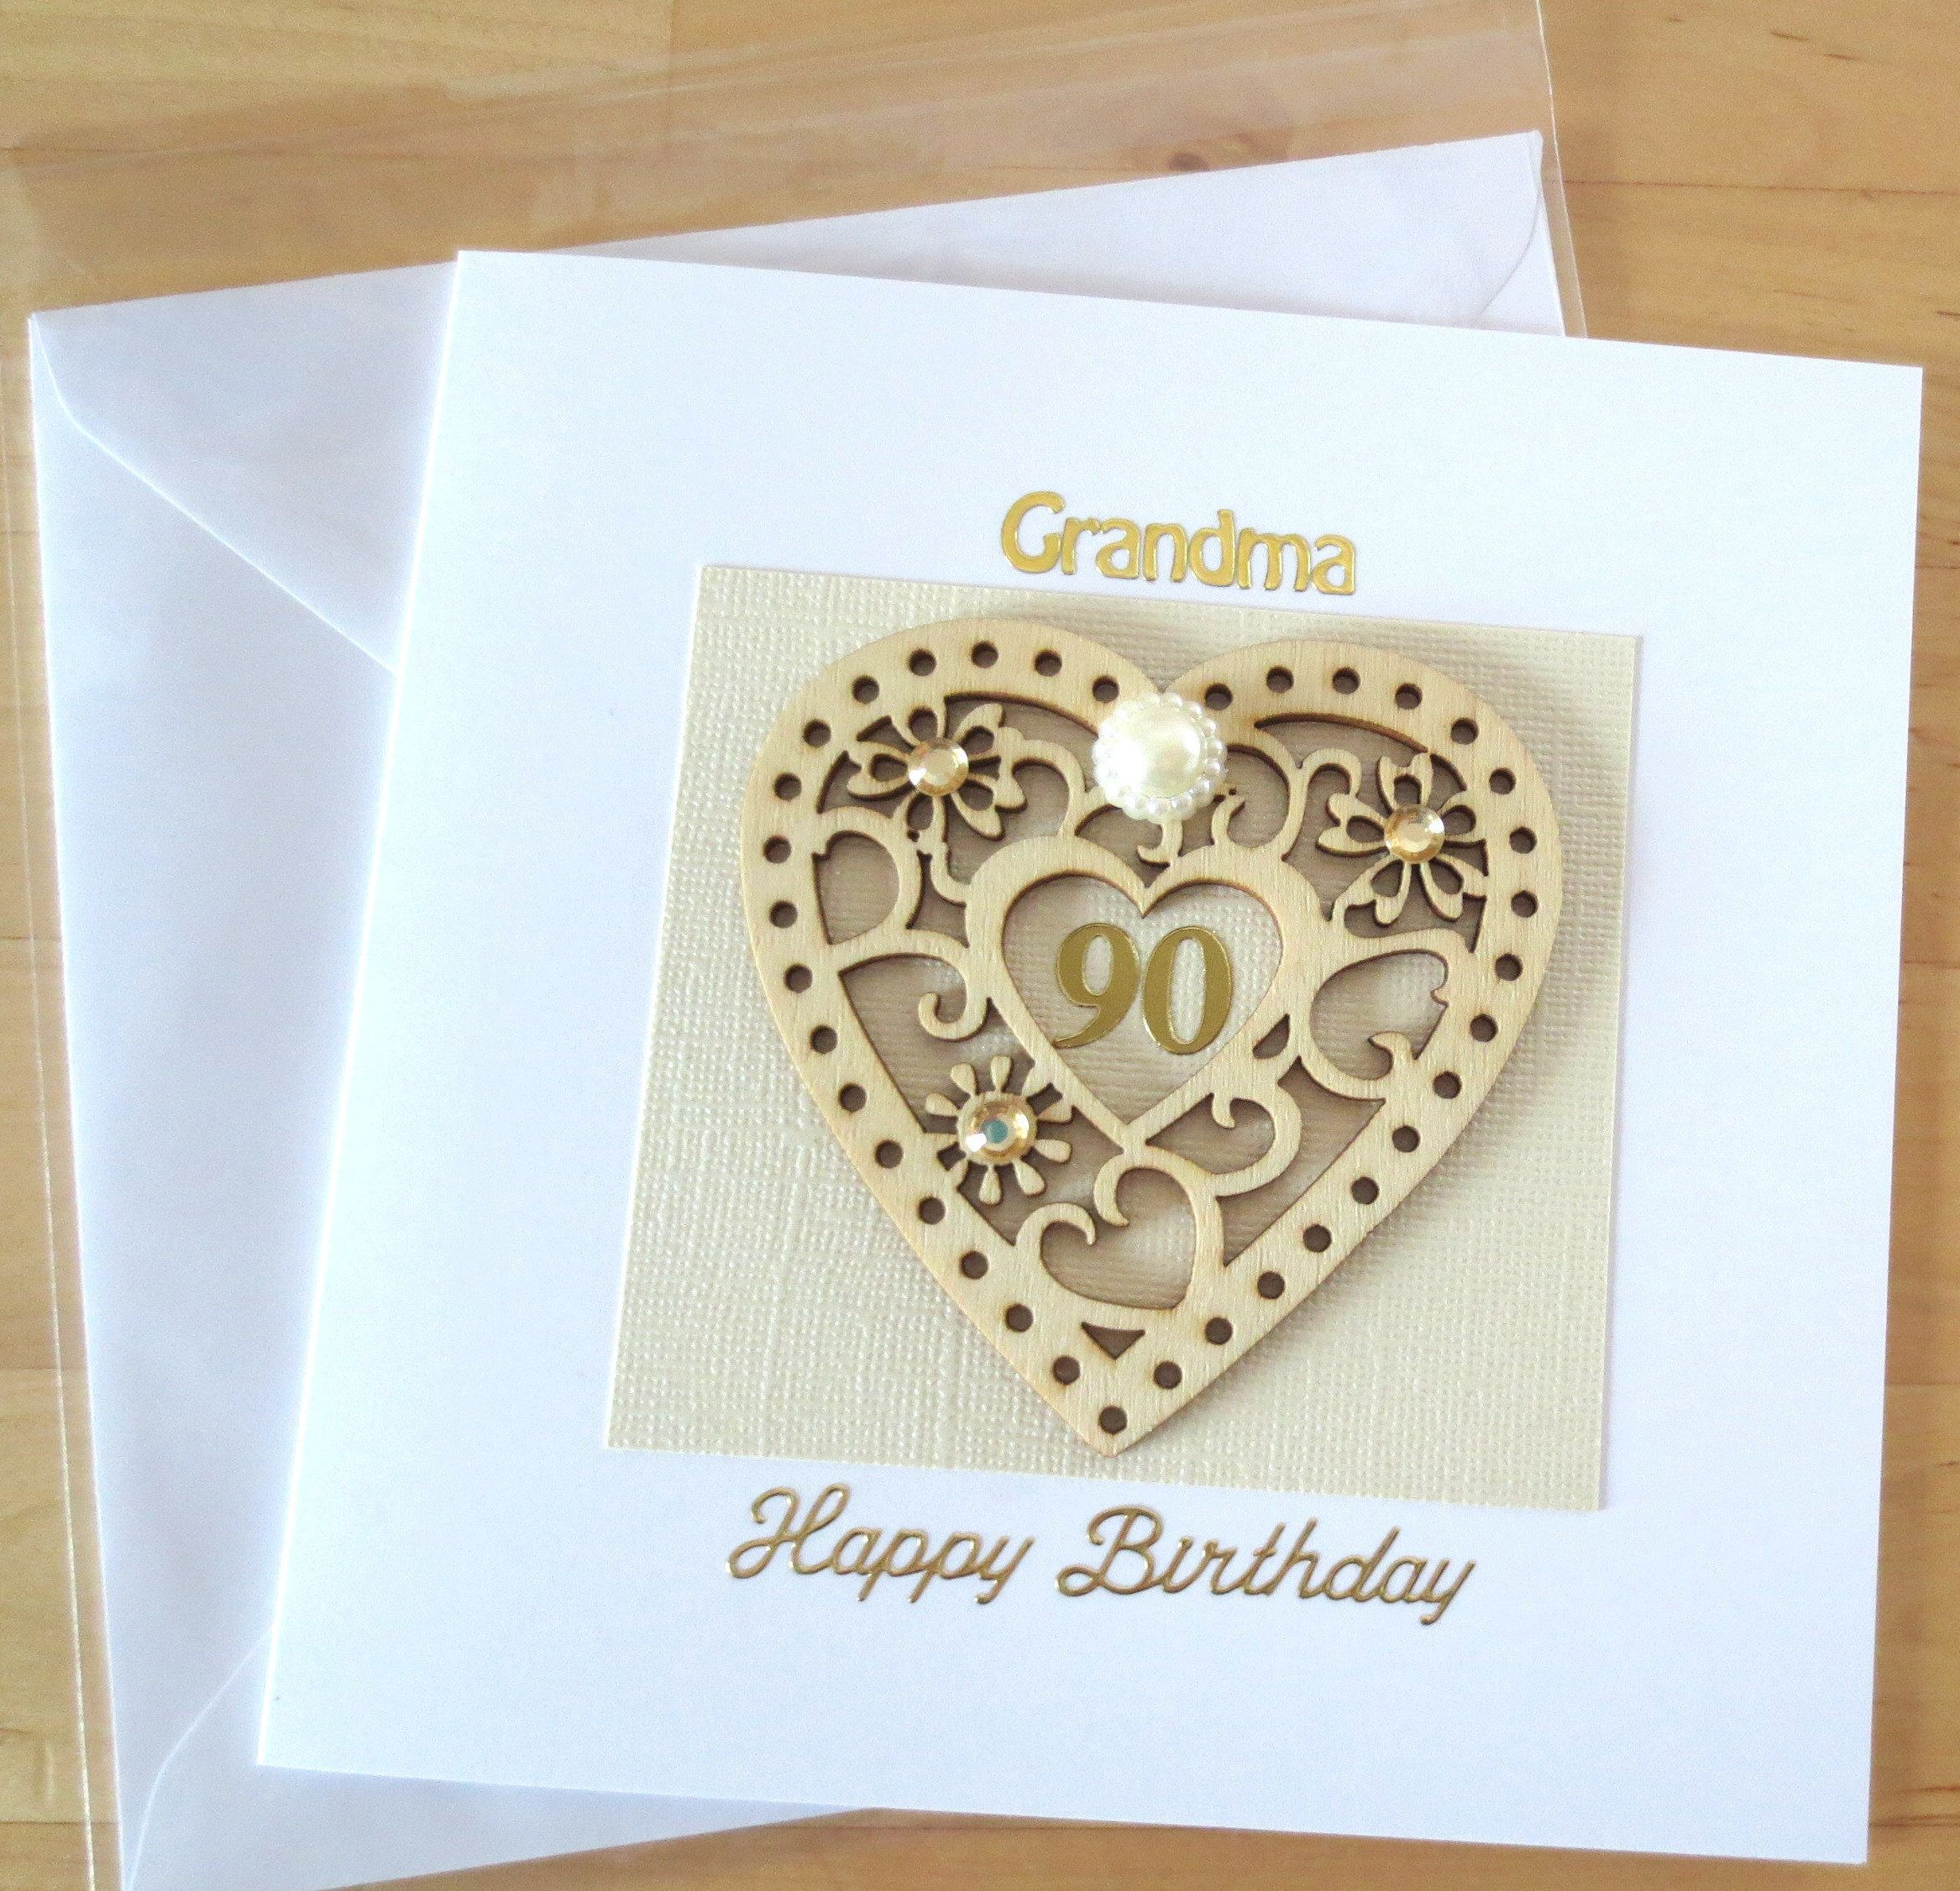 100th Birthday Card 90th Gifts Cards For Her Grandma